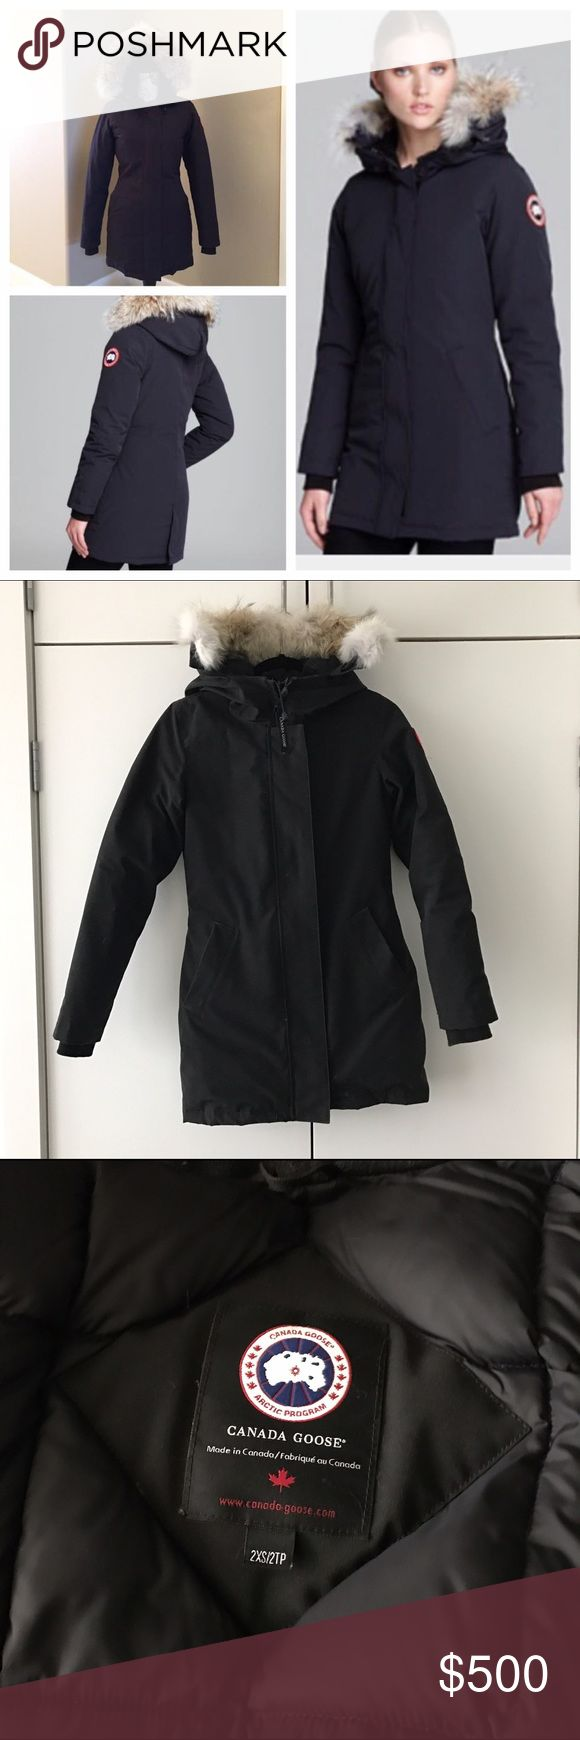 Canada Goose Victoria Parka 2xs Black Have you ever wanted a Canada Goose parka but didn't want to spend $900? Now is your chance! I'm moving from NYC to LA and trying to get rid of everything I don't need. Purchased this coat in January 2016. It's the warmest jacket I have ever owned and wish I bought it sooner. Im sad to part with it but happy to be getting away from cold weather. Reasonable offers welcome! Canada Goose Jackets & Coats